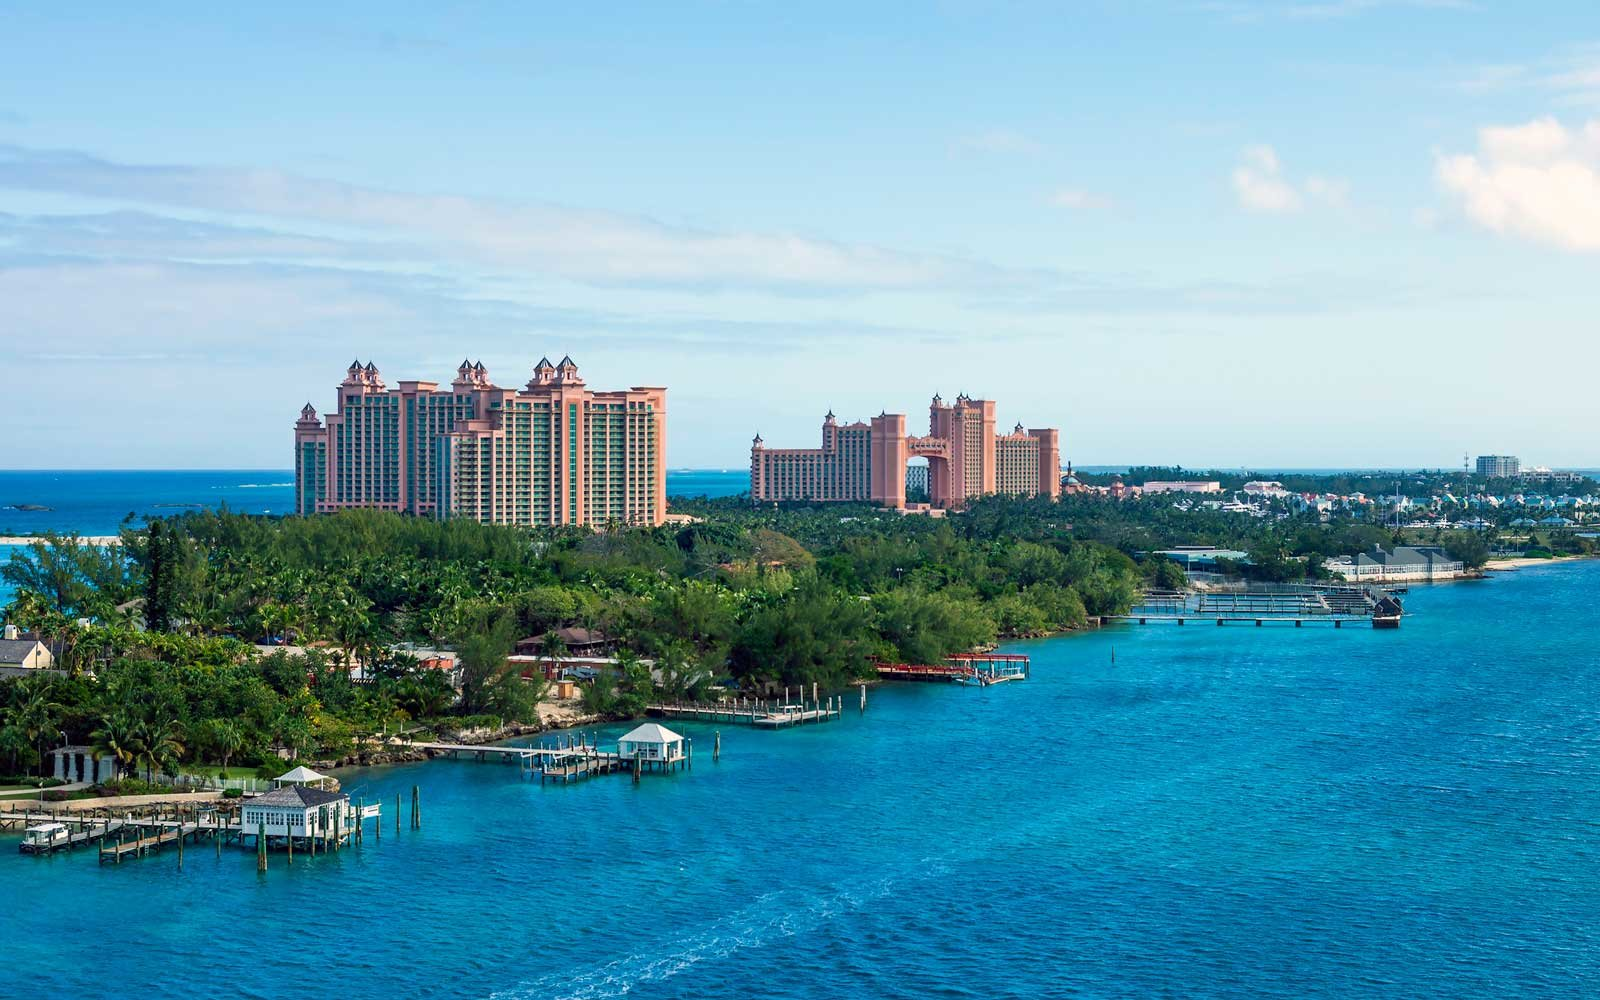 Nassau Paradise Island in the Bahamas